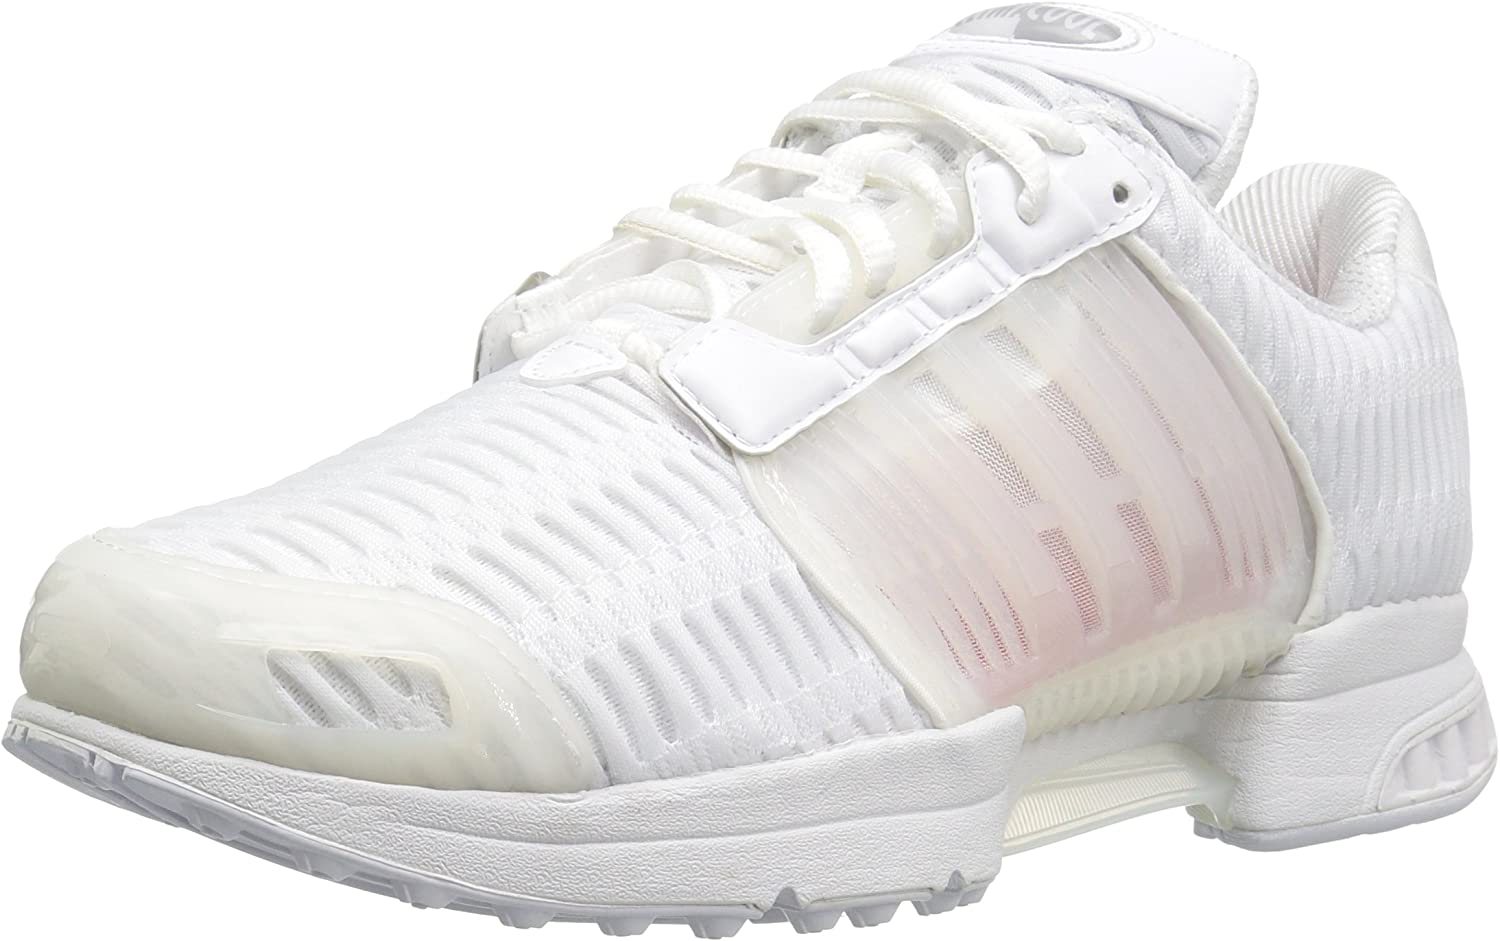 Adidas Clima Cool 1 Men s Running Shoes White s75927 10.5 D M US